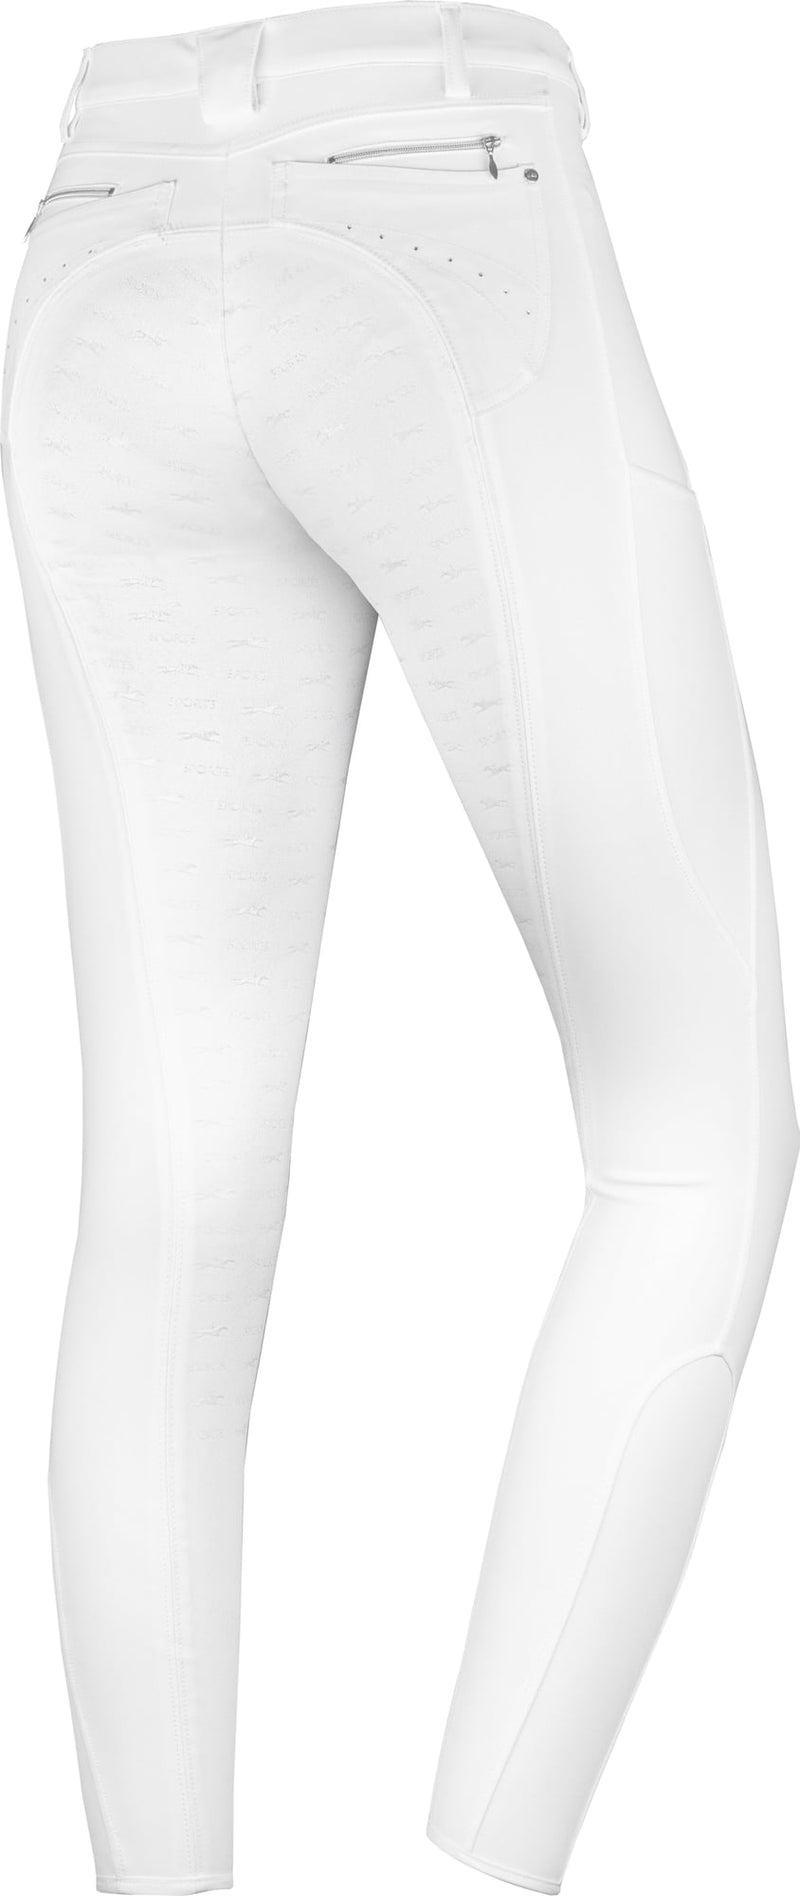 Schockemöhle Full Seat Victory Riding Breeches - White - The Dressage Store